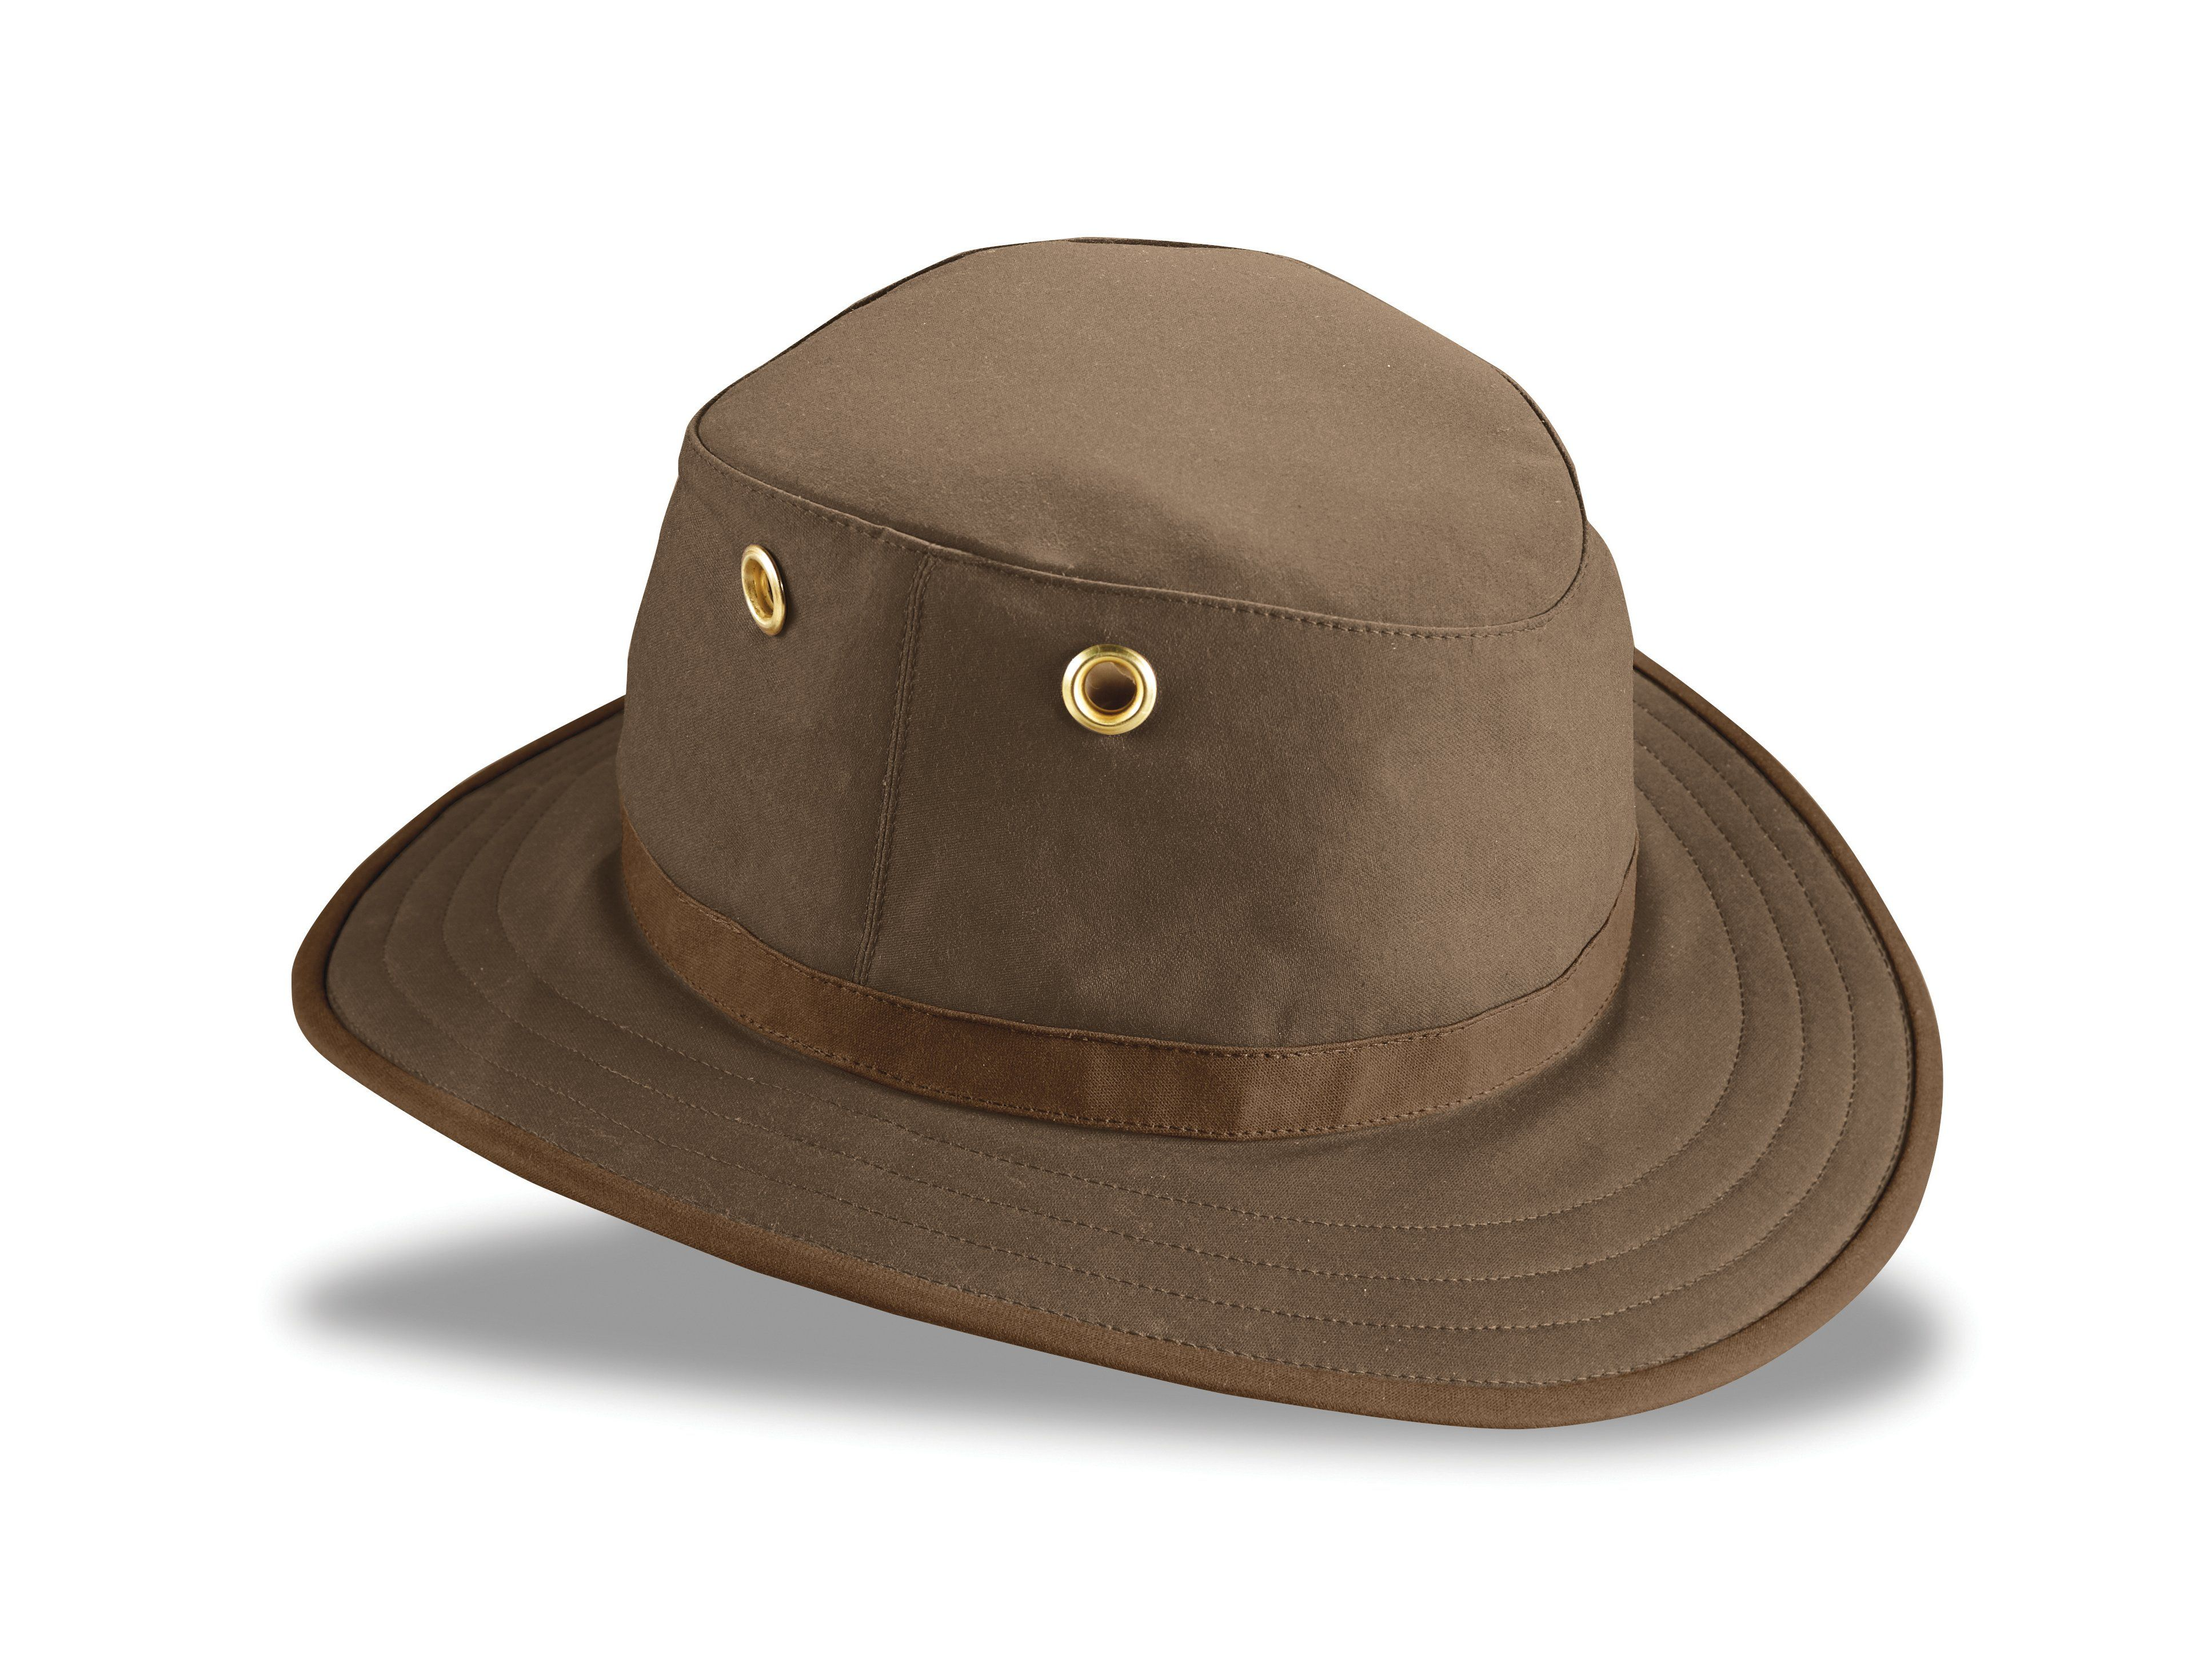 a2bf95e2f Tilley TWC7 Waxed Cotton Medium Brim Wash and Pack Outback Hat ...